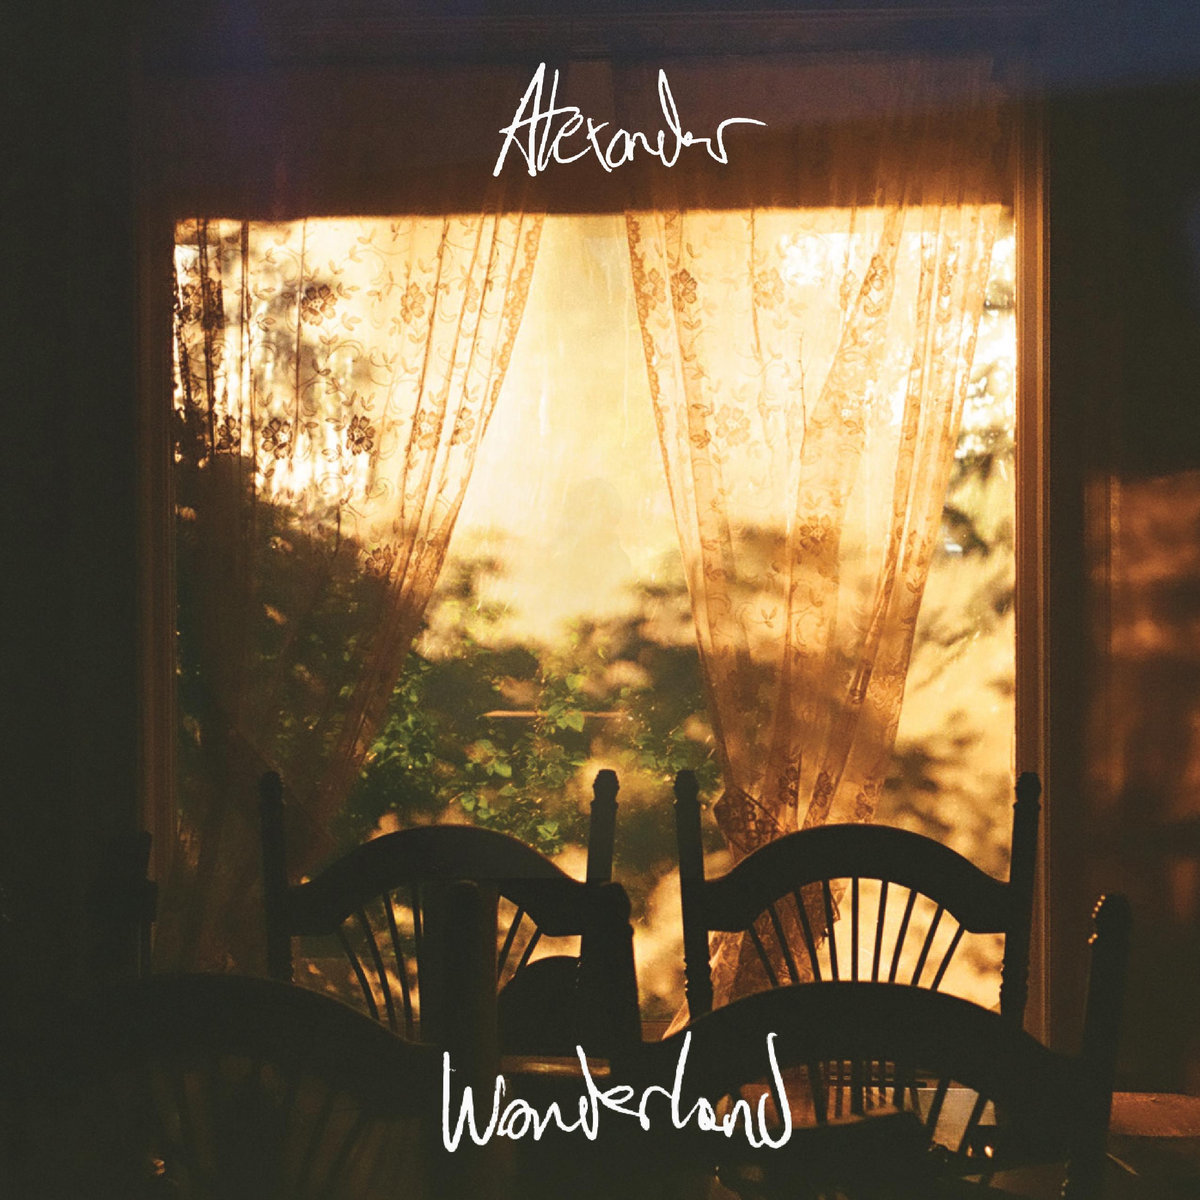 alexander wonderland album art